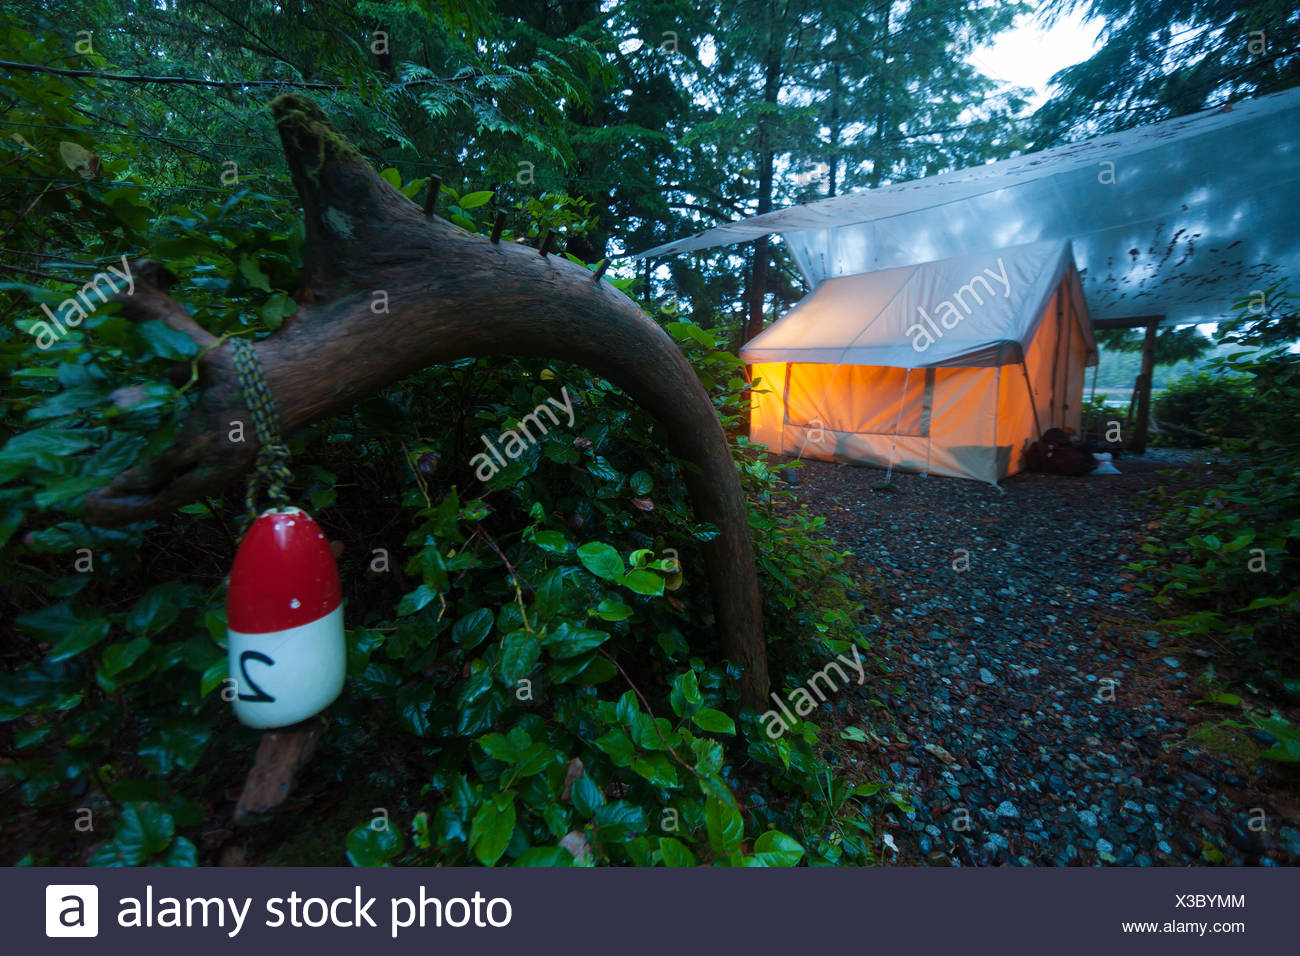 Rustic yet cozy tent camping greets visitors to West Coast Expeditions camp on Spring Island, Kyuquot, Vancouver Island, British Columbia, Canada - Stock Image